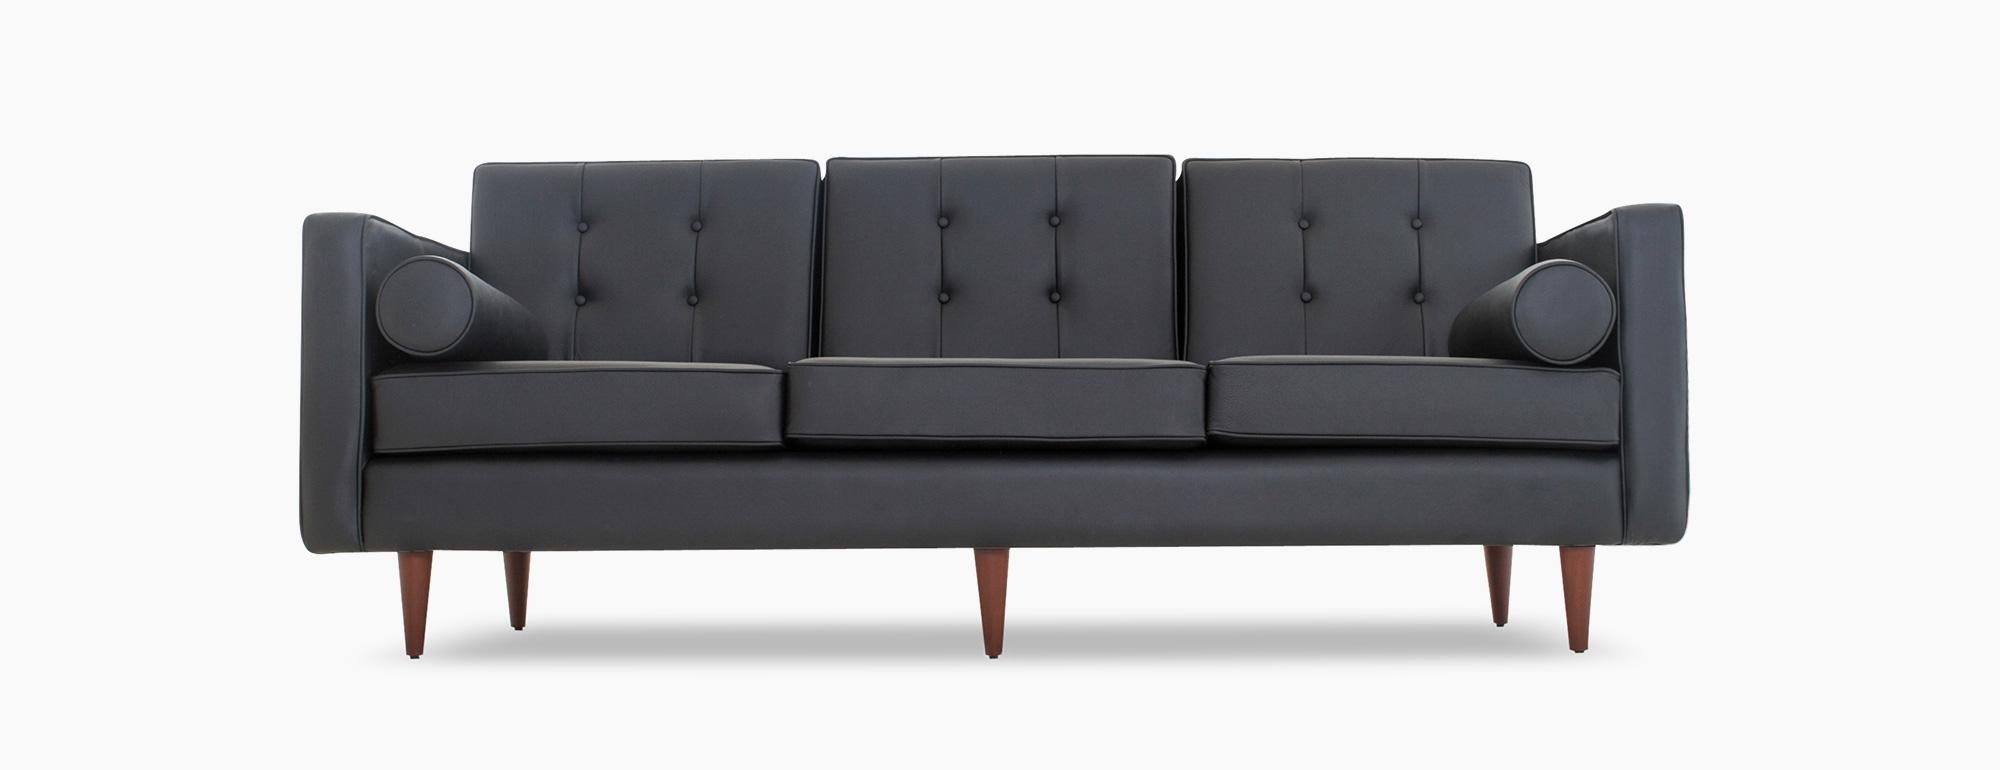 Braxton Leather Sofa | Joybird Pertaining To Braxton Sofa (Image 5 of 20)